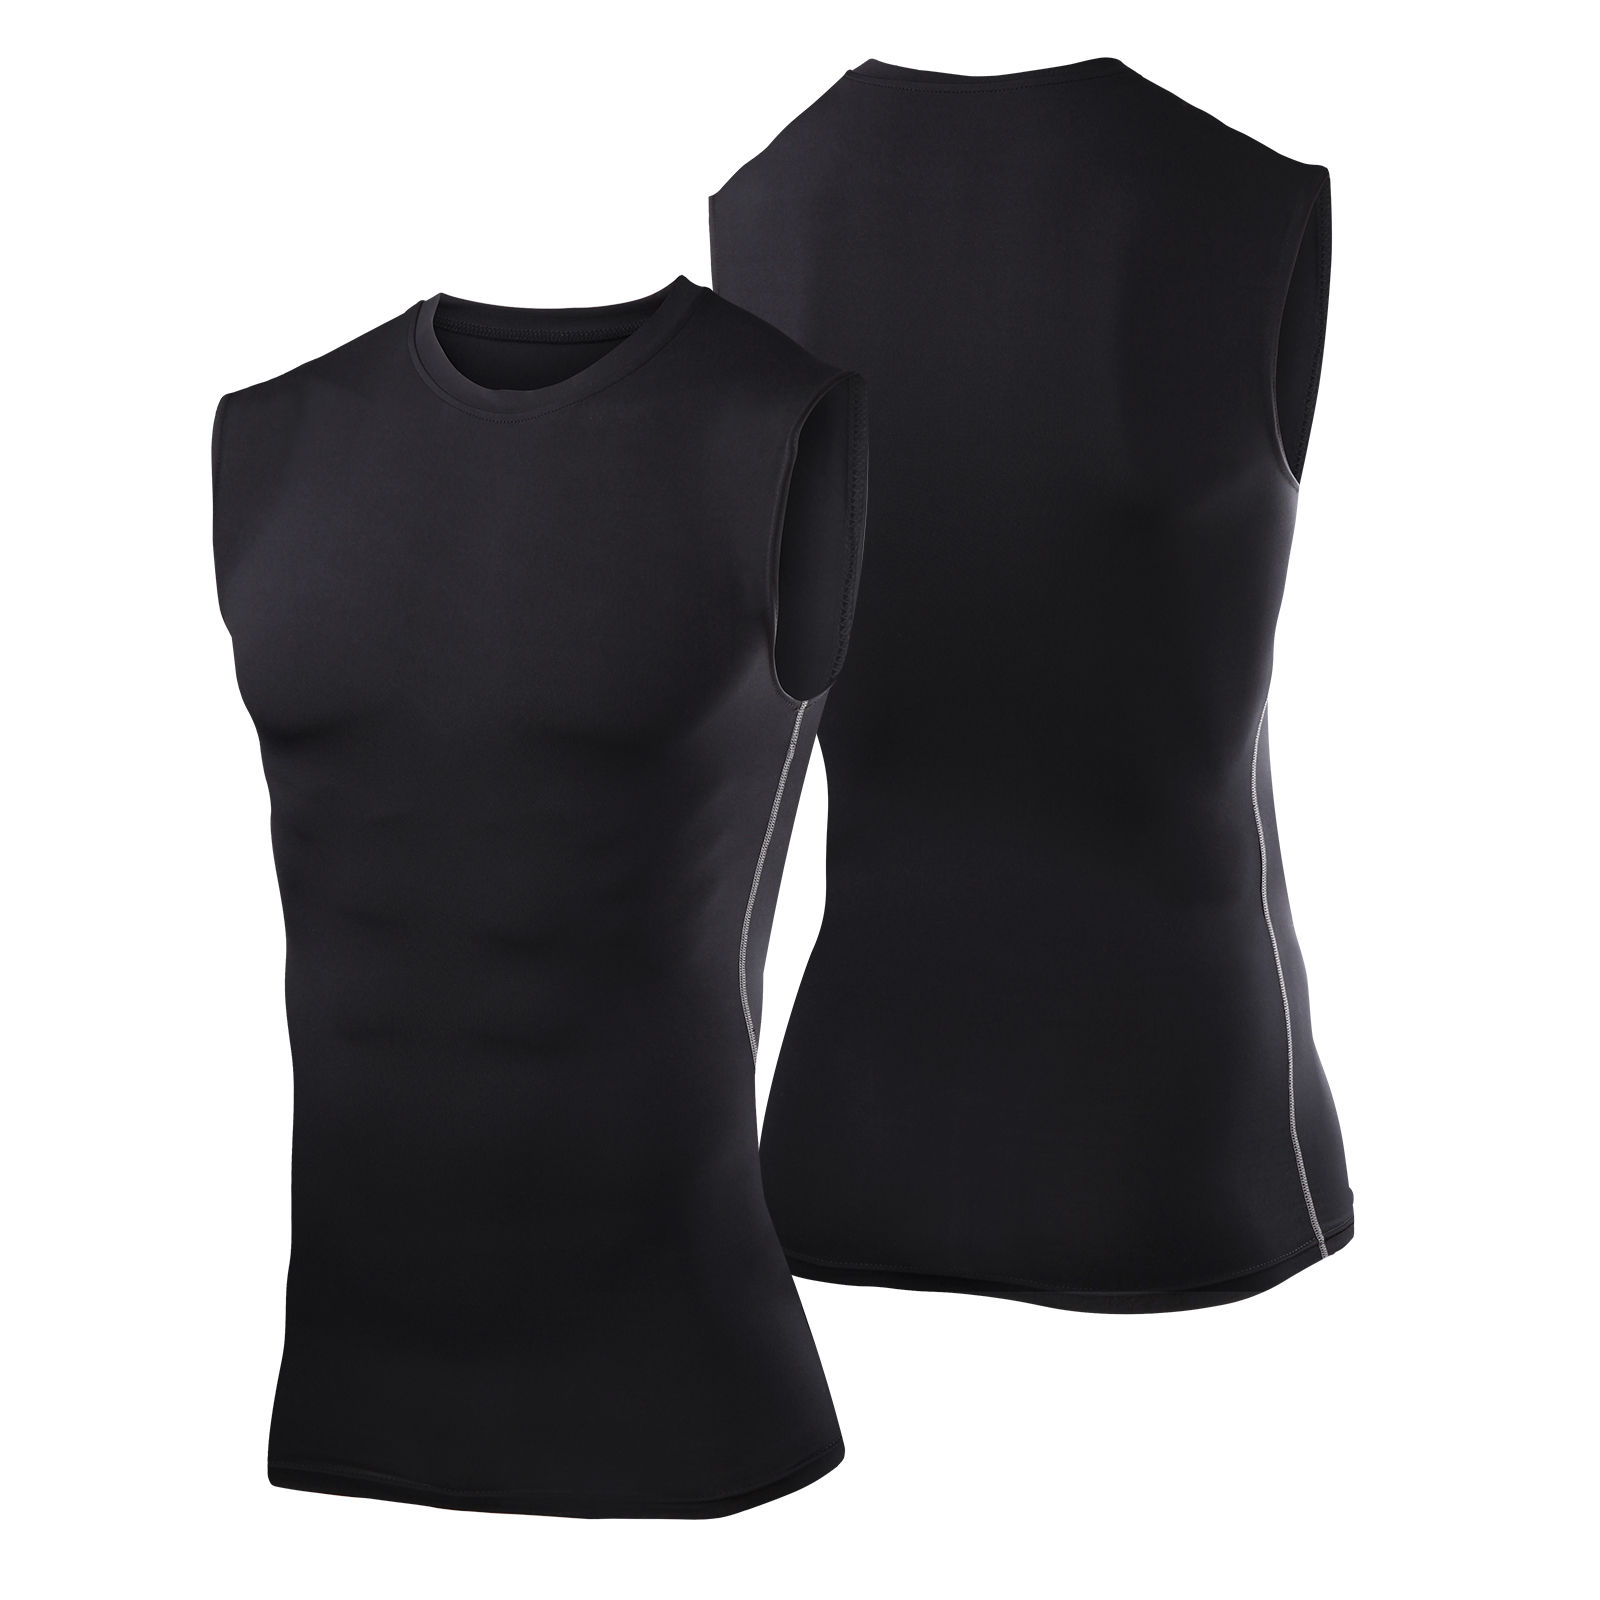 men black sleeveless compression armour baselayers tight top gym shirts sports